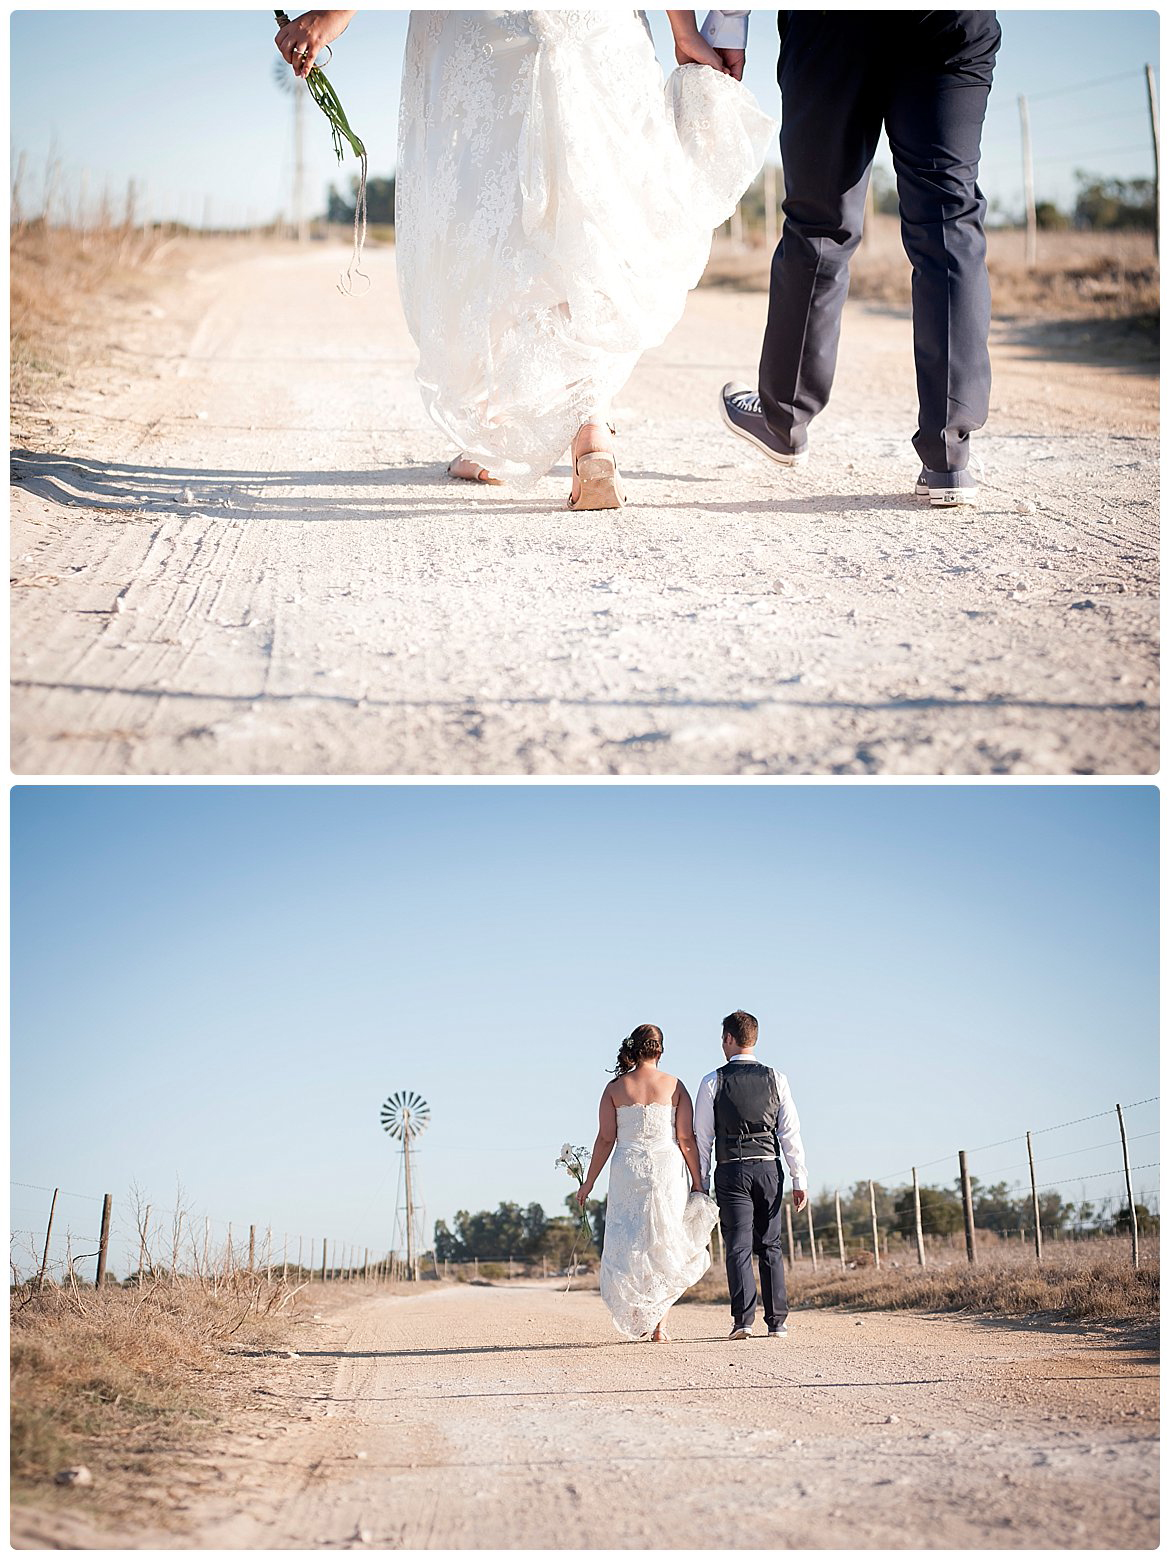 cape-town-wedding-photographer-schaftplaas-langebaan-0026